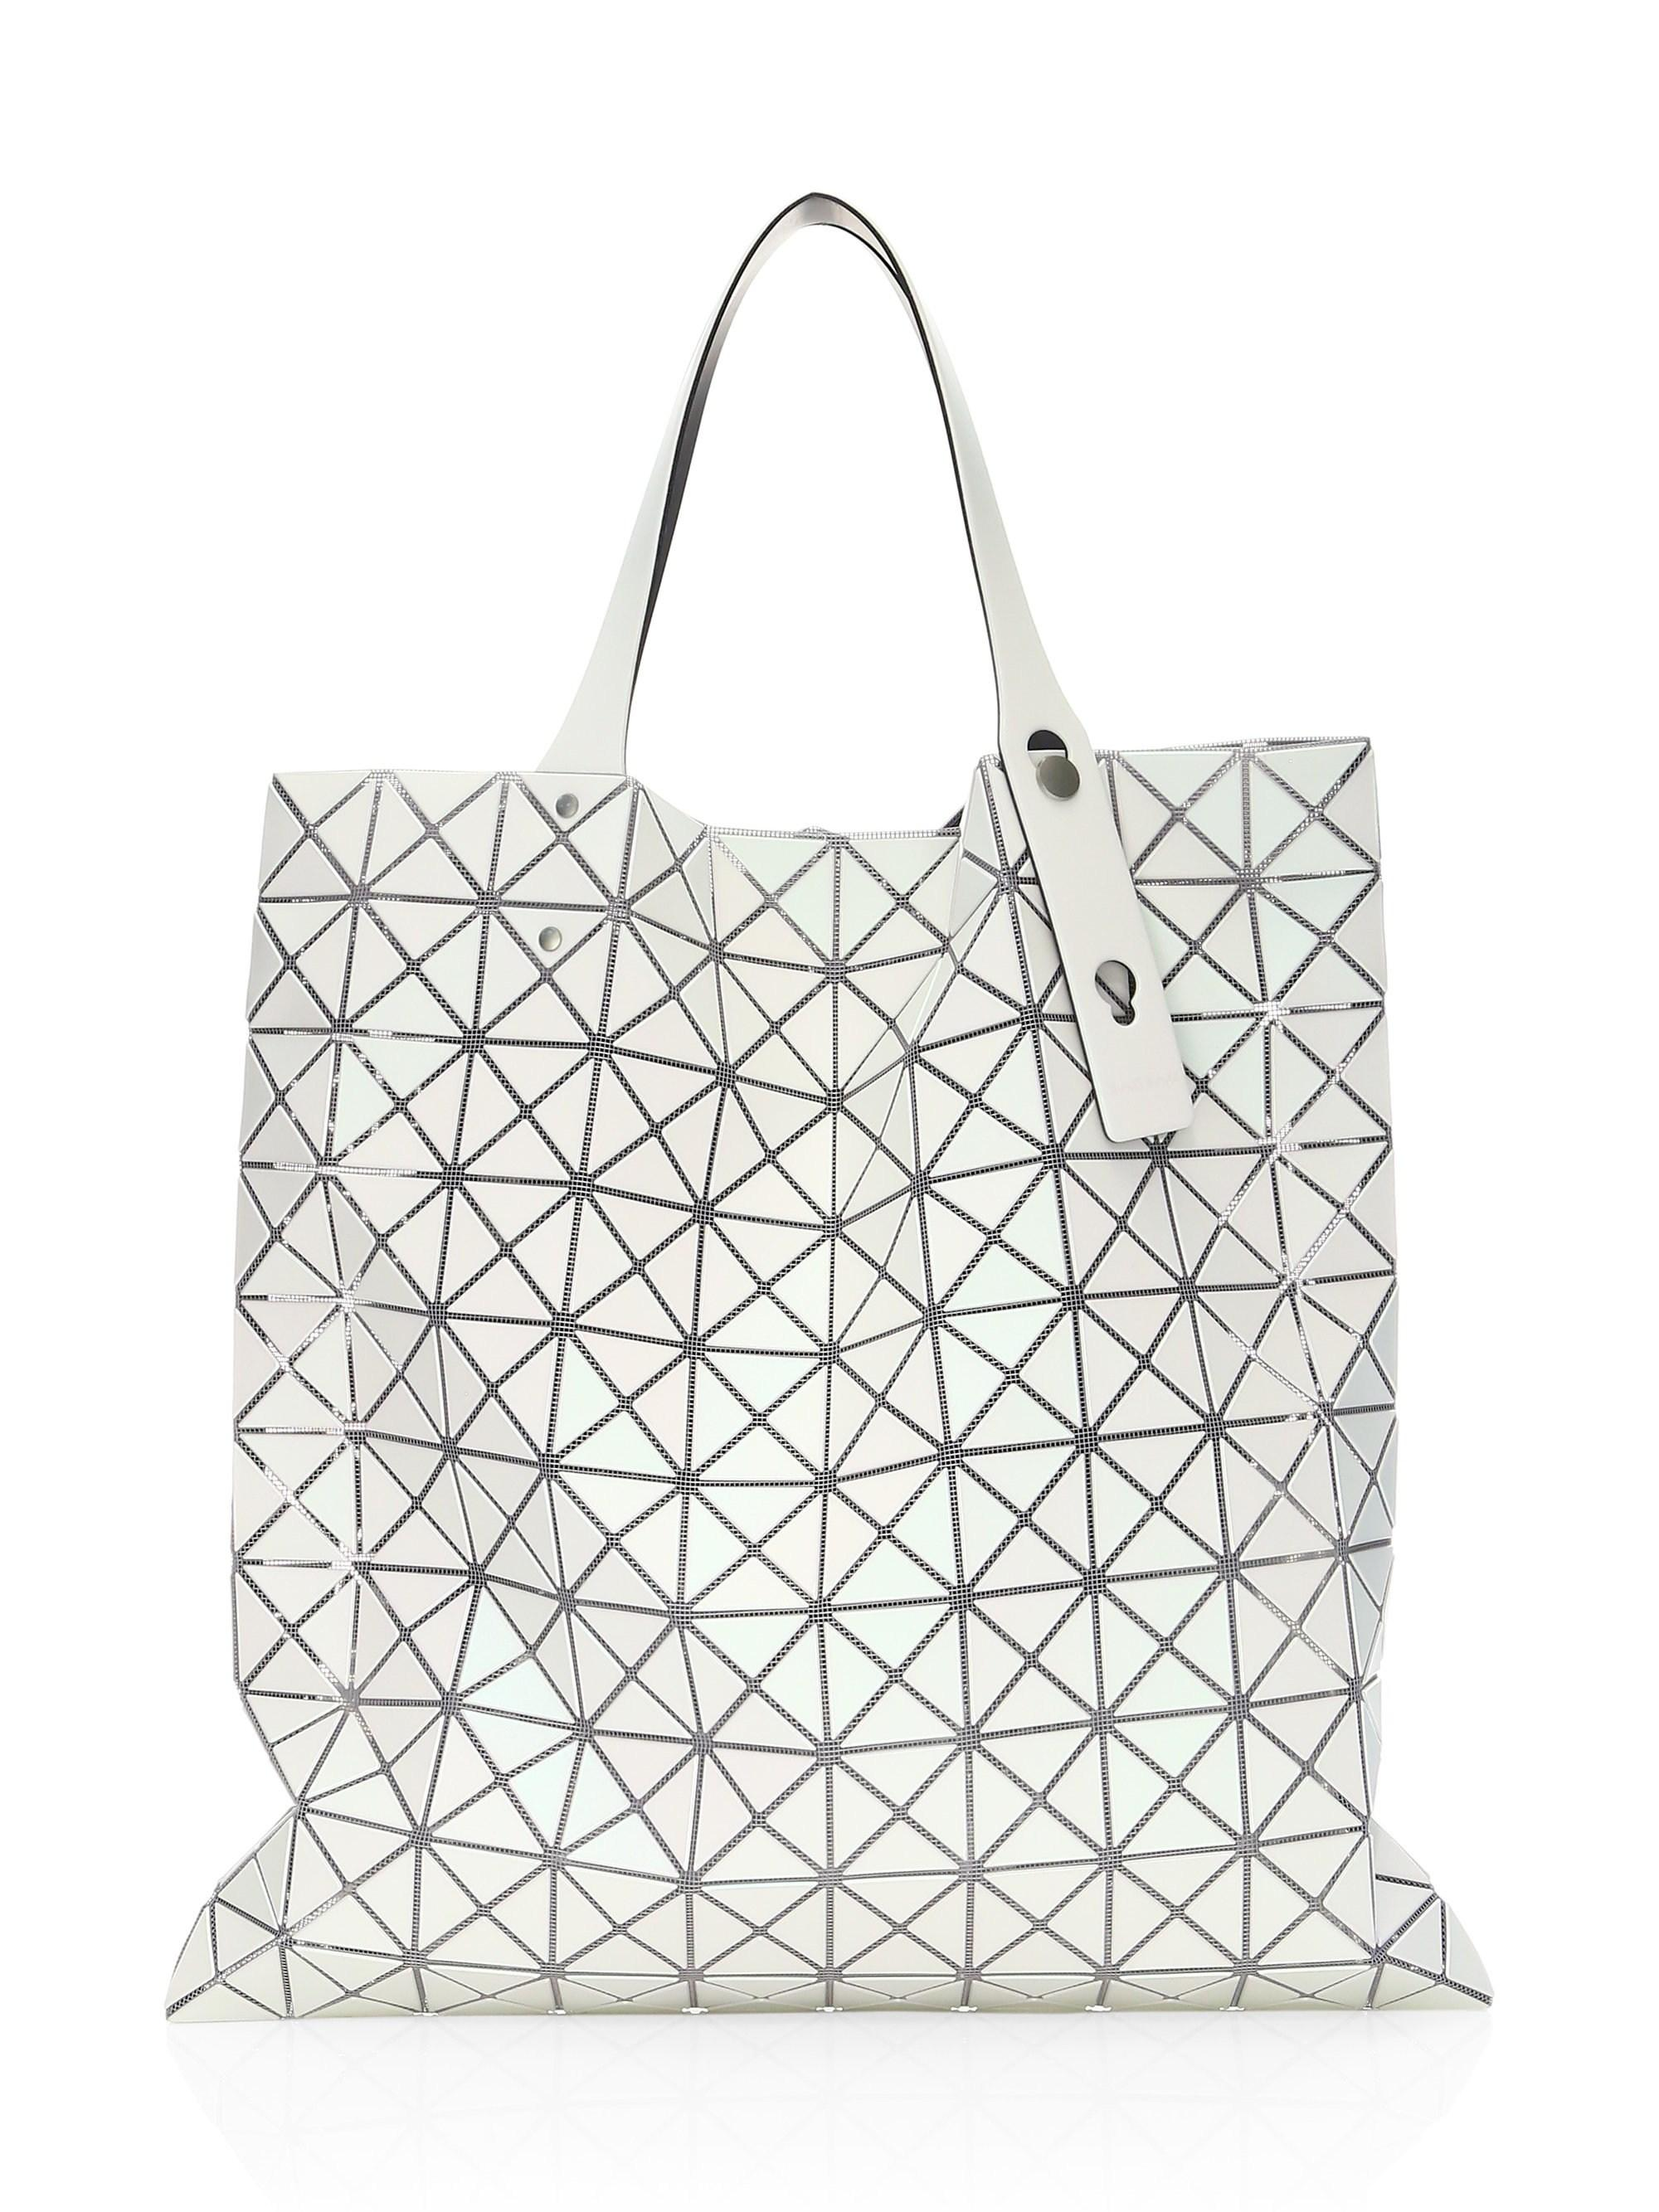 Lyst - Bao Bao Issey Miyake White Prism Frost Tote in White 2afefc69ad4ec